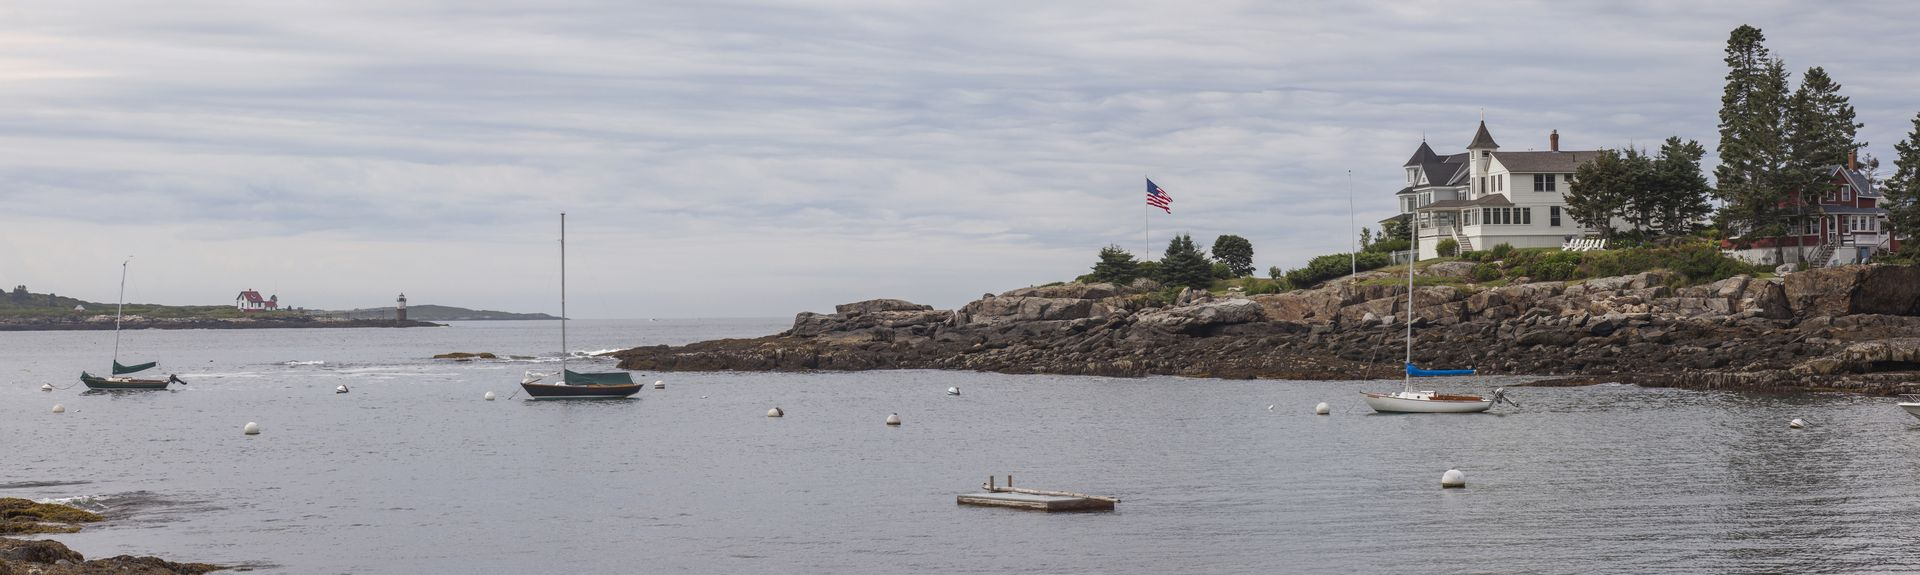 Ocean Point, East Boothbay, Maine, USA